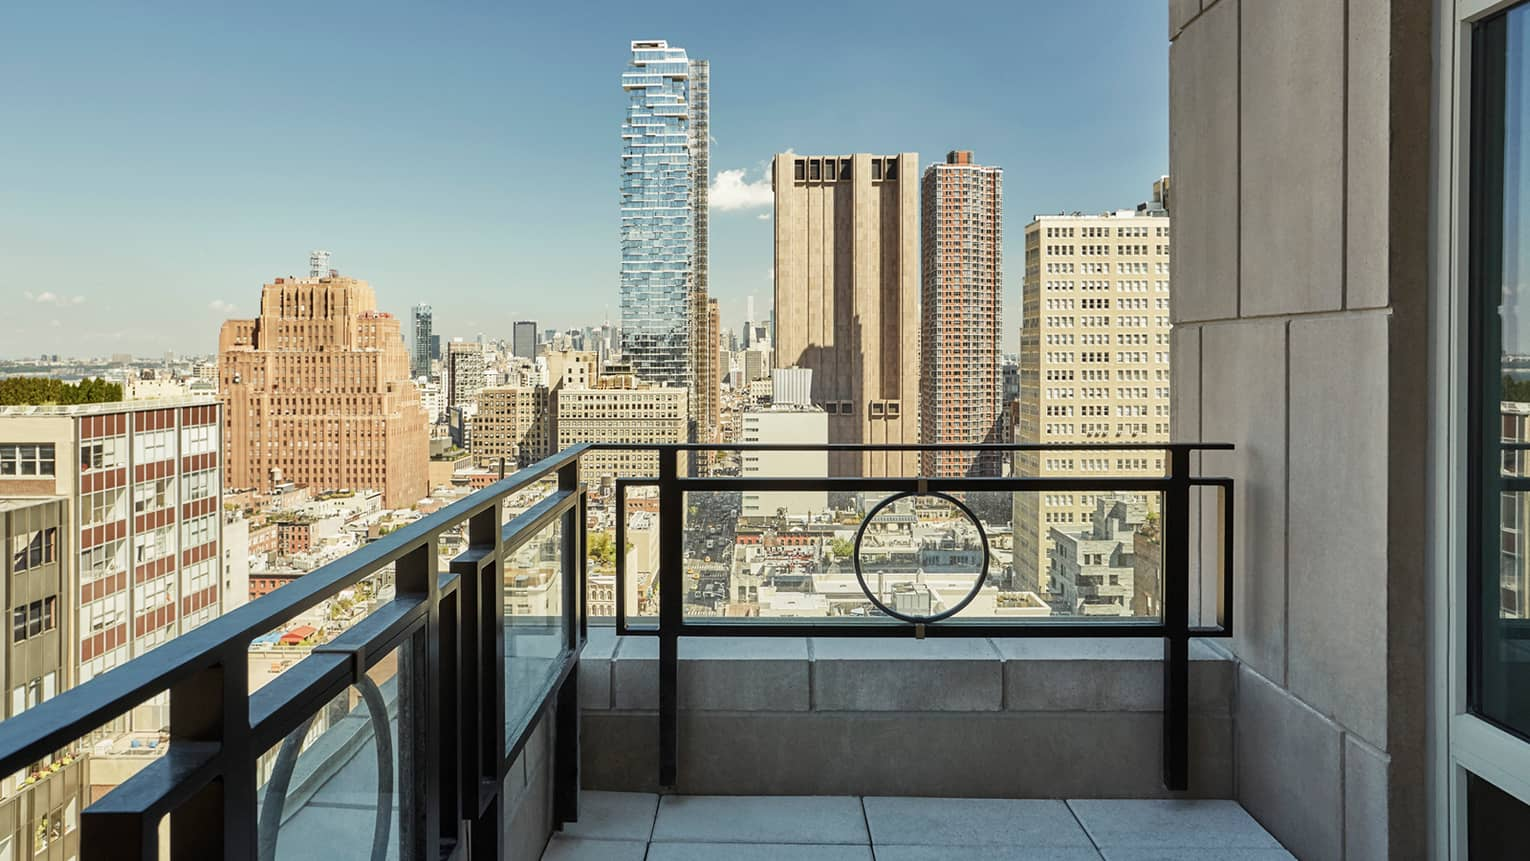 Hotel suite balcony overlooking downtown New York City buildings, skyscrapers